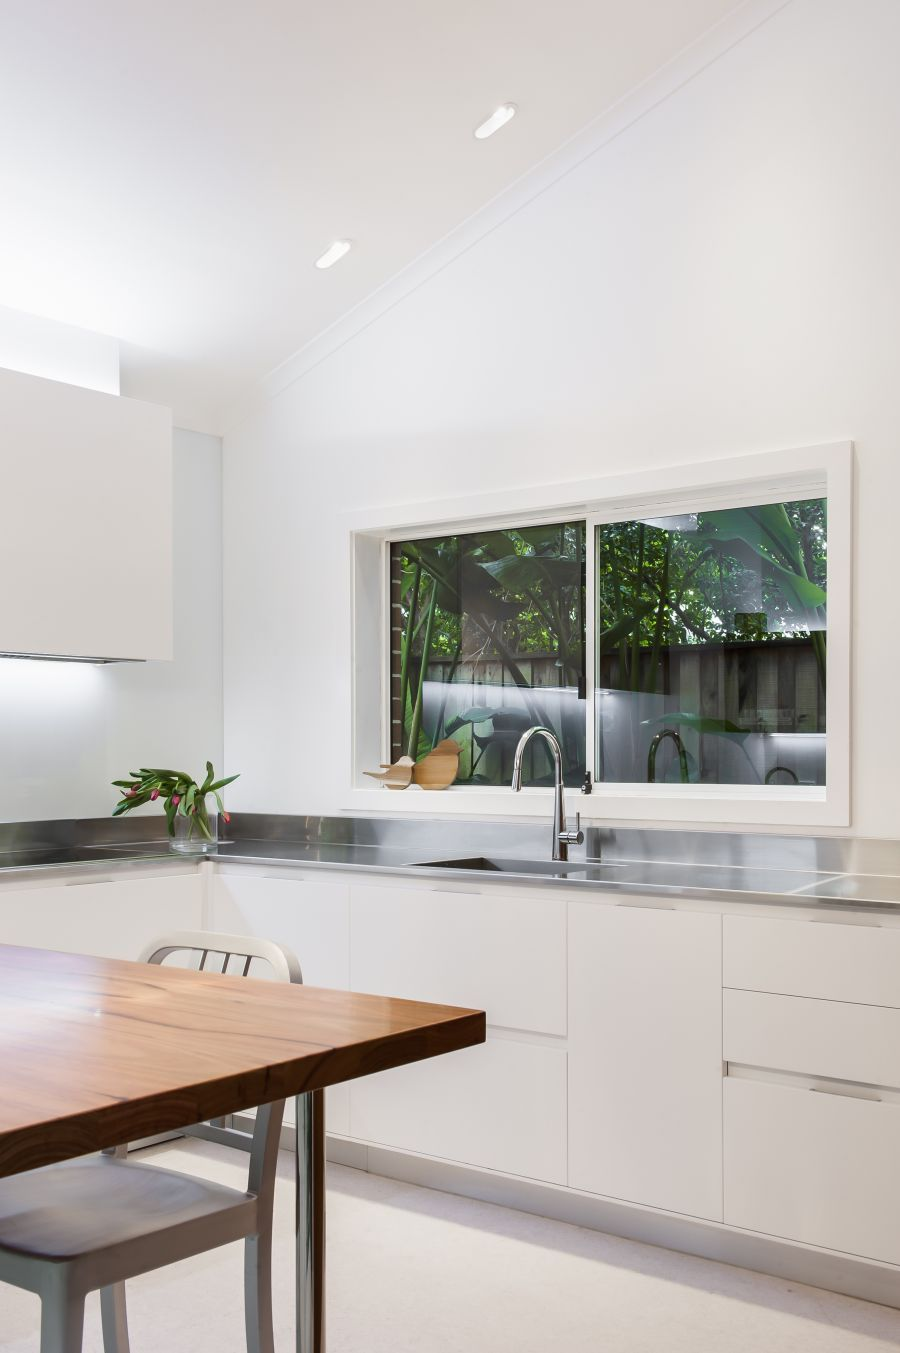 Small Contemporary Kitchen Makes Room For Home Office and Laundry ...